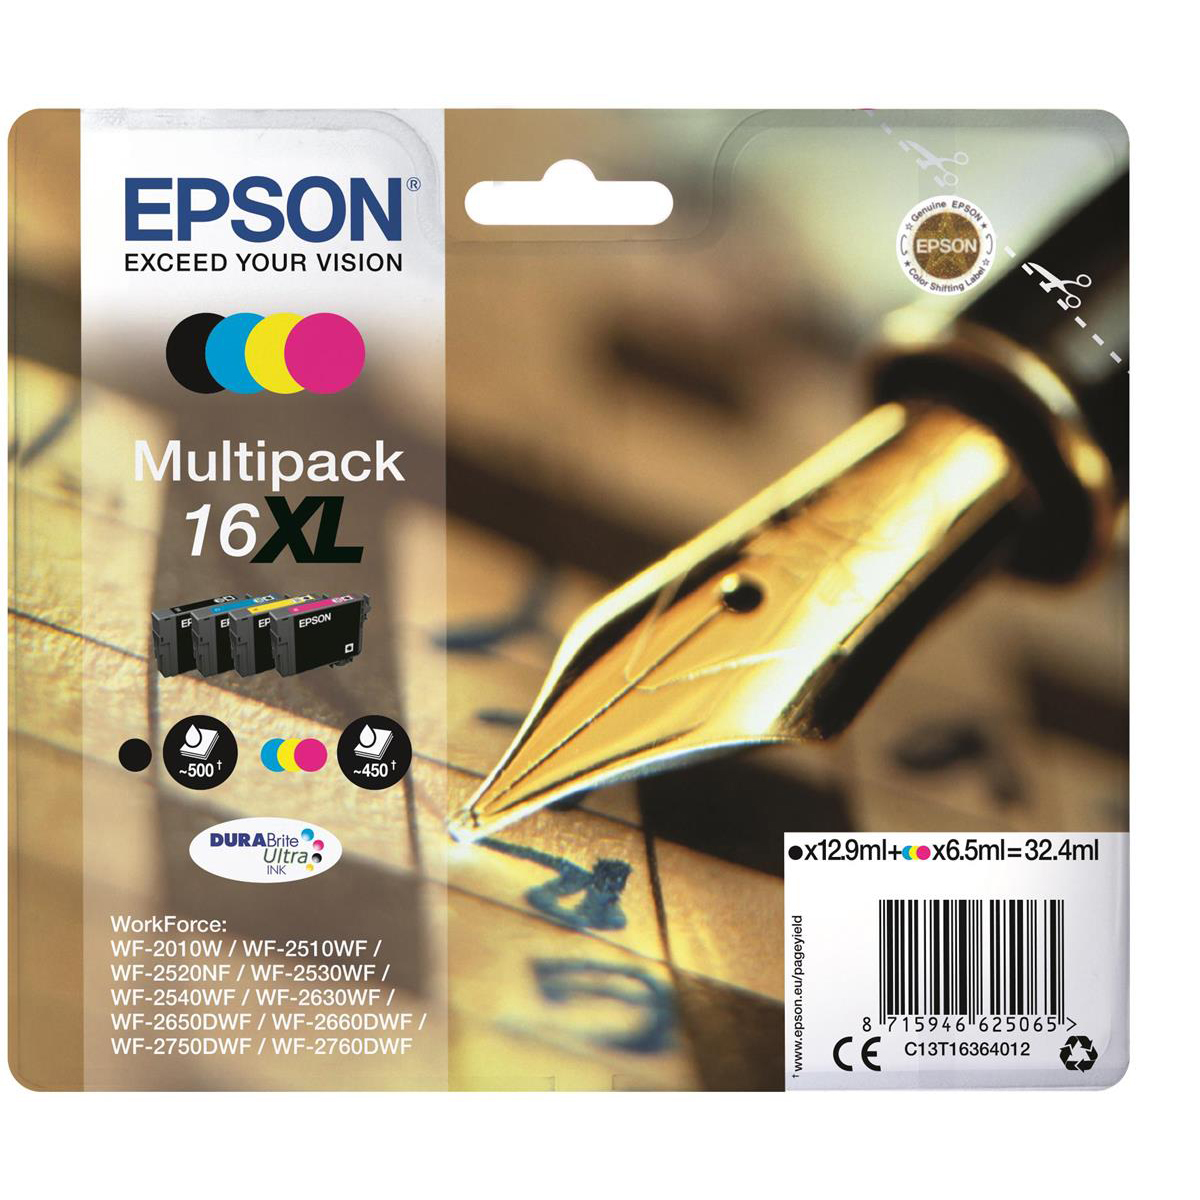 Epson 16xl Inkjetcart Pen Crossword Hy Page Life 500pp Black 450pp C M Y 32 4ml Ref C13t16364012 Pack 4